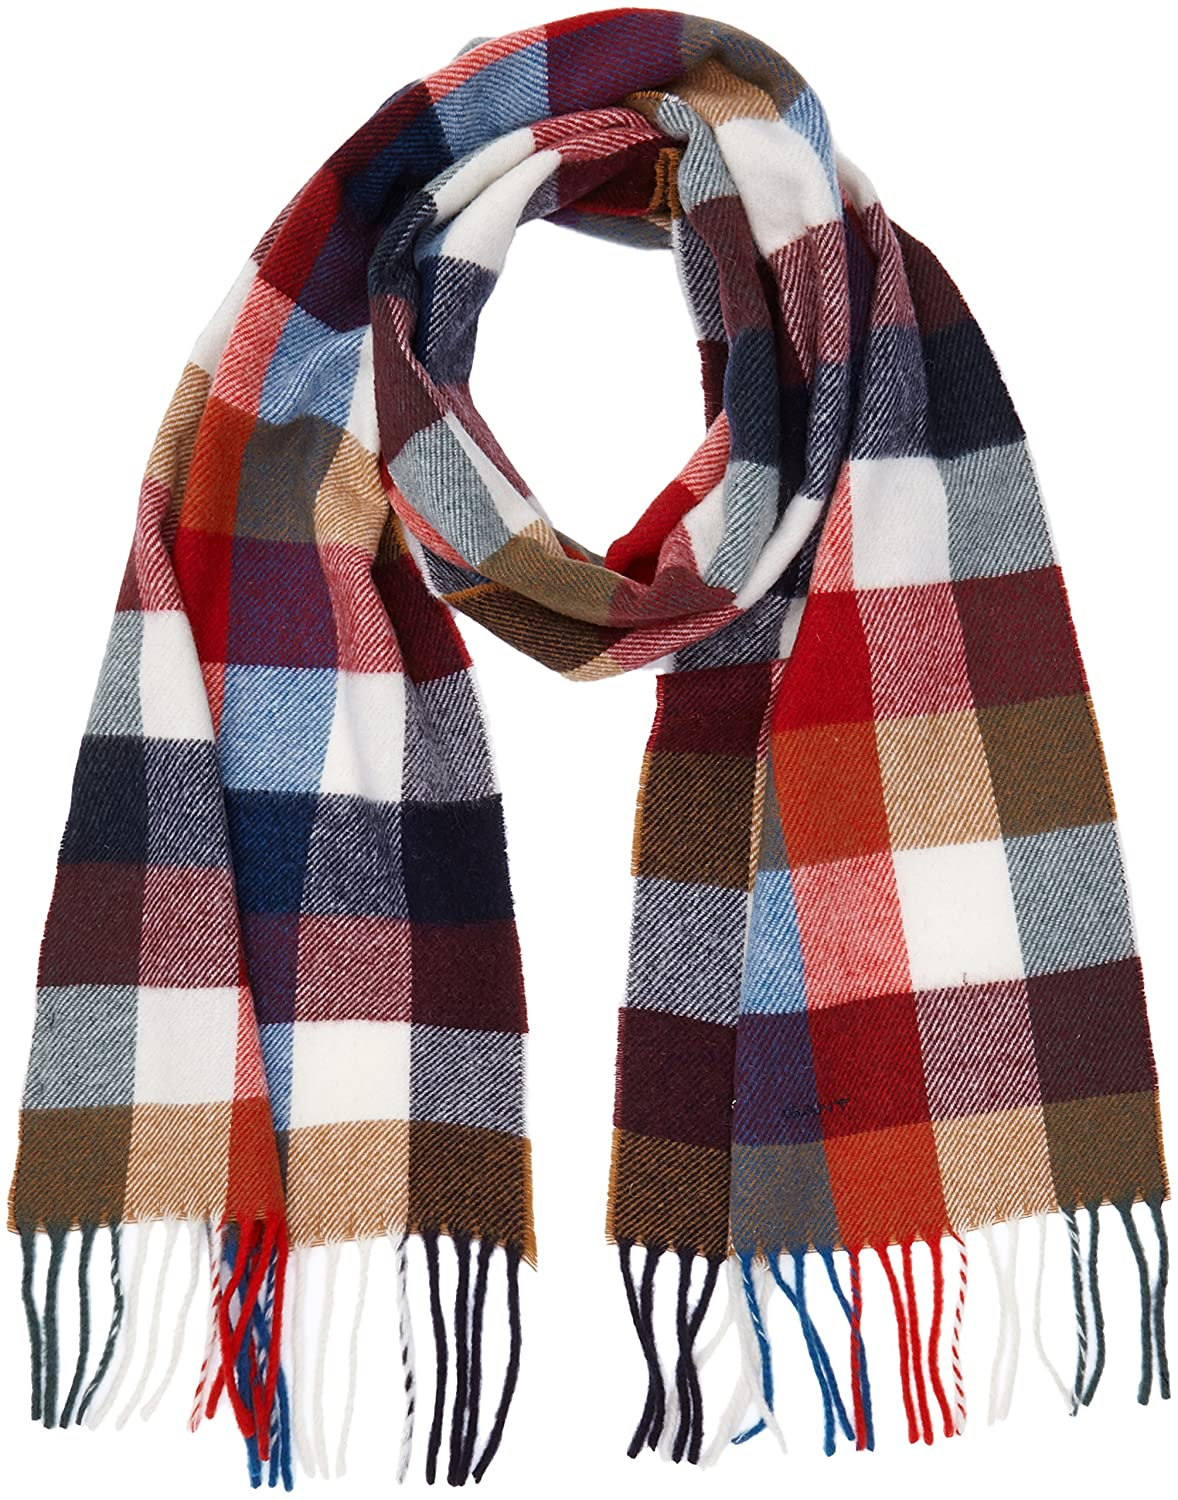 GANT Men s Multicheck Lambswool Scarf (Bright Red), One Size  Amazon.co.uk   Clothing acb80224e95